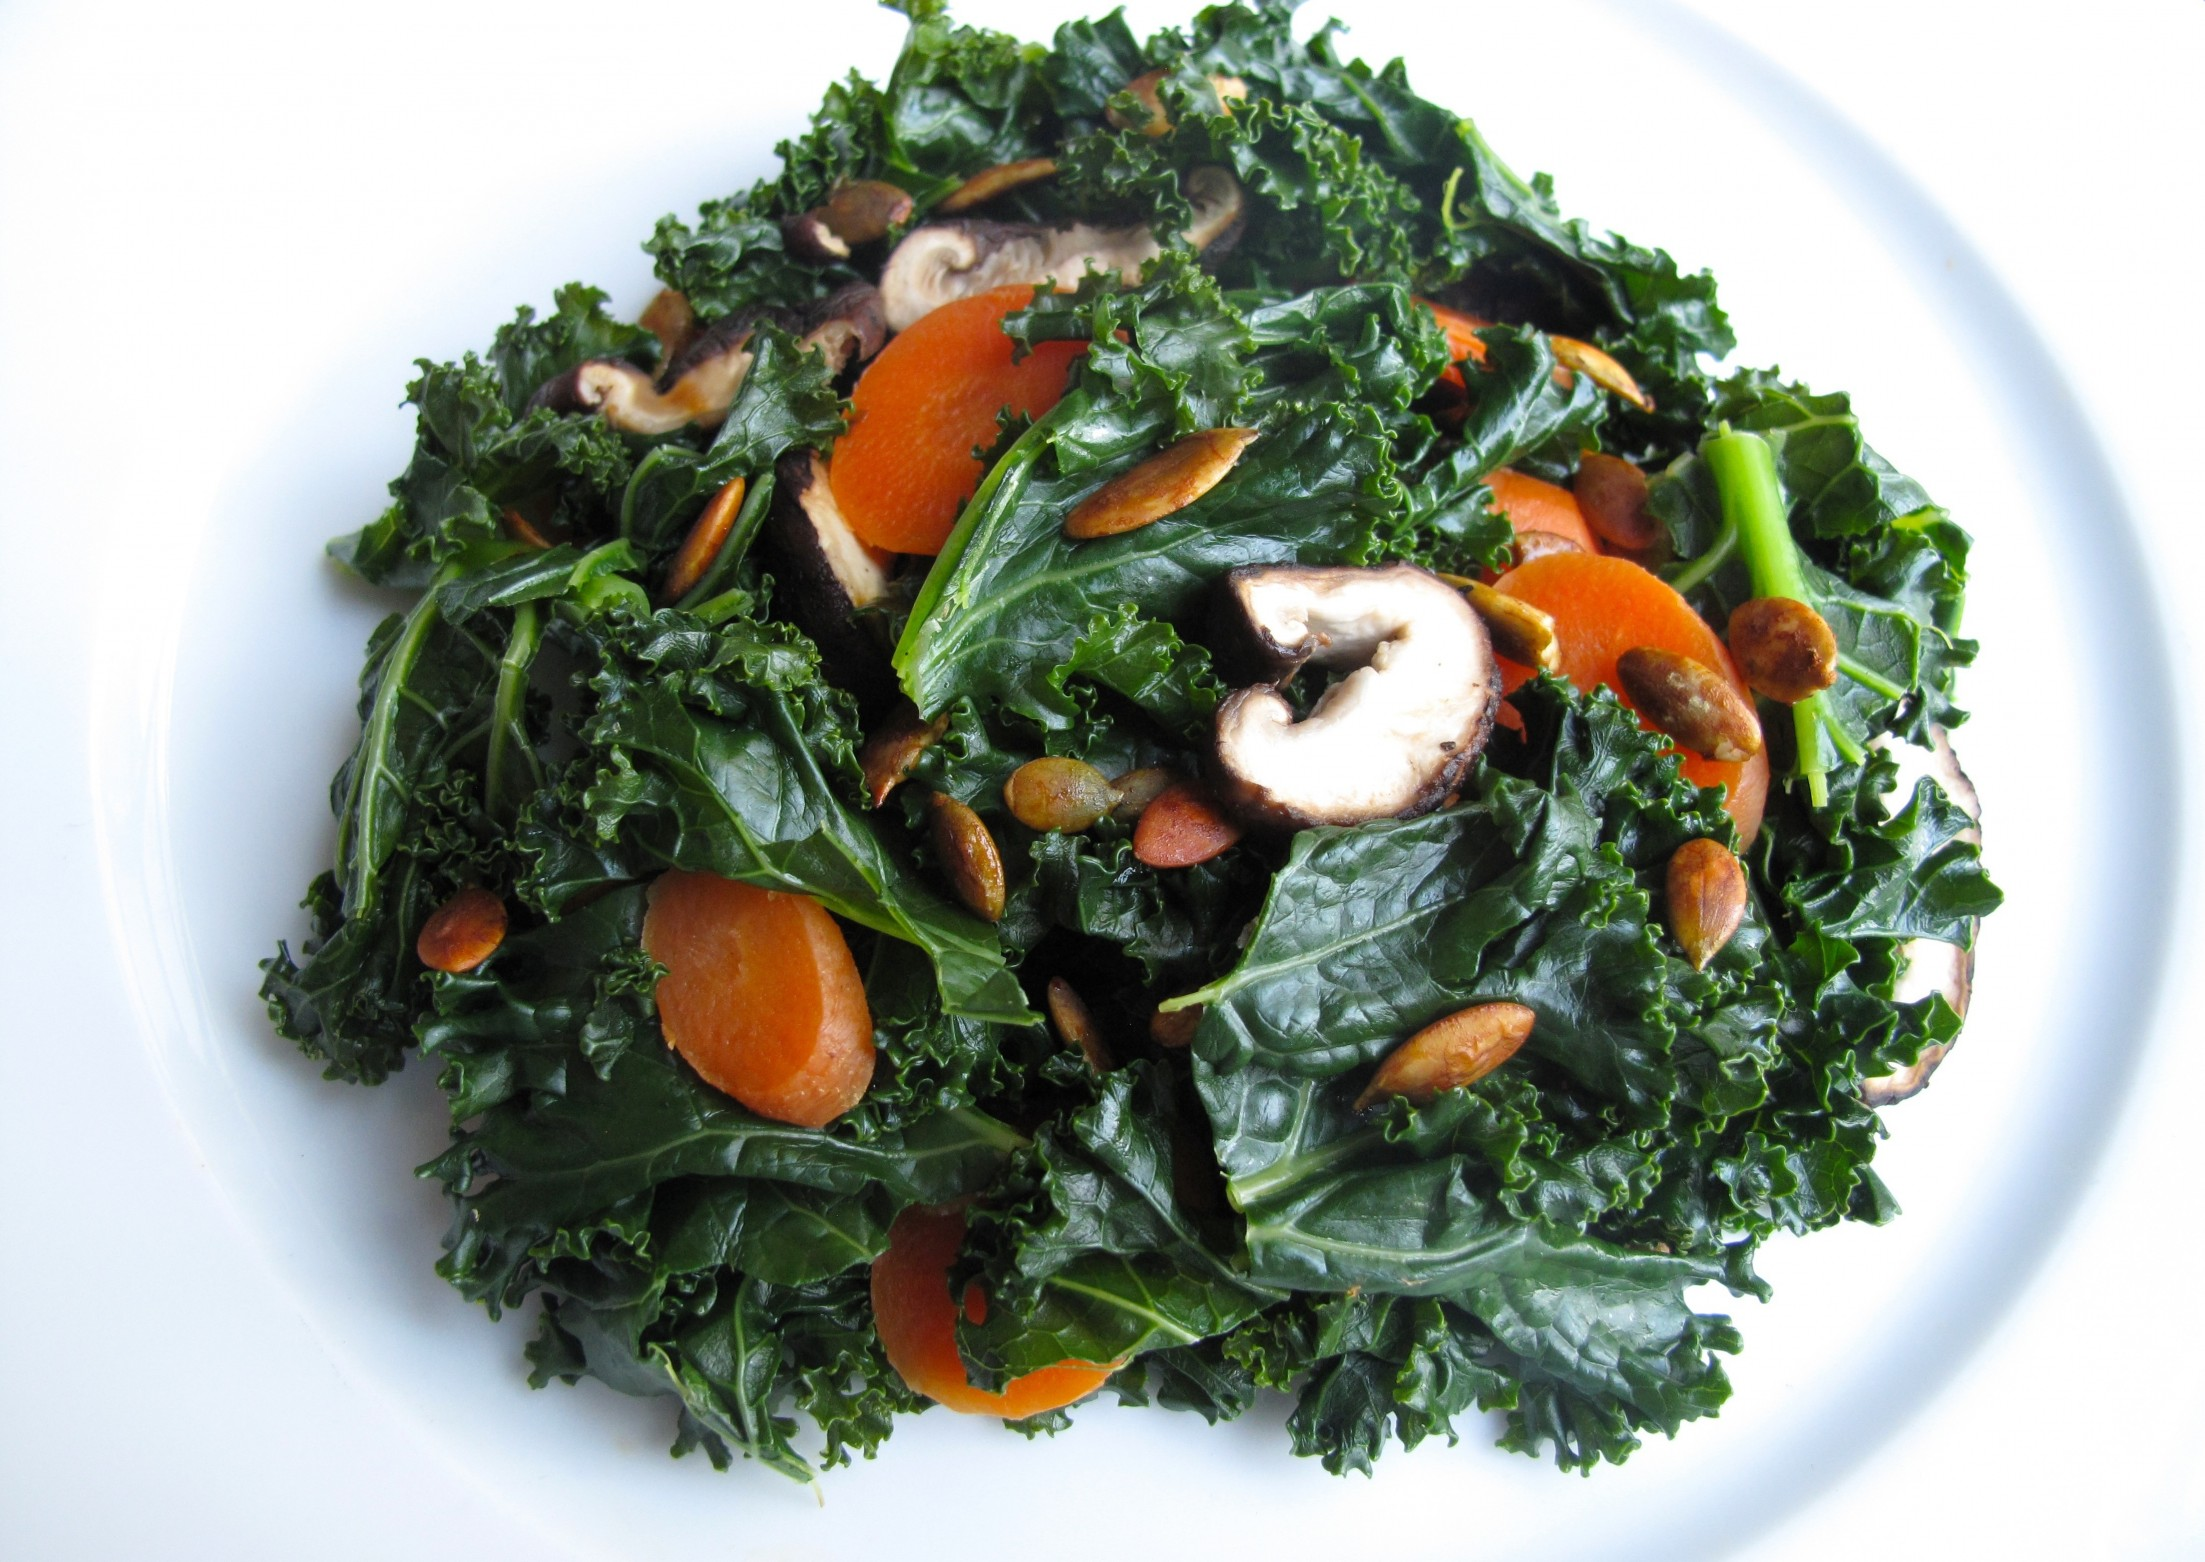 Steamed Kale Carrots Shiitake Mushrooms e1331333522546 Asparagus in Lemon, Garlic, and Olive Oil